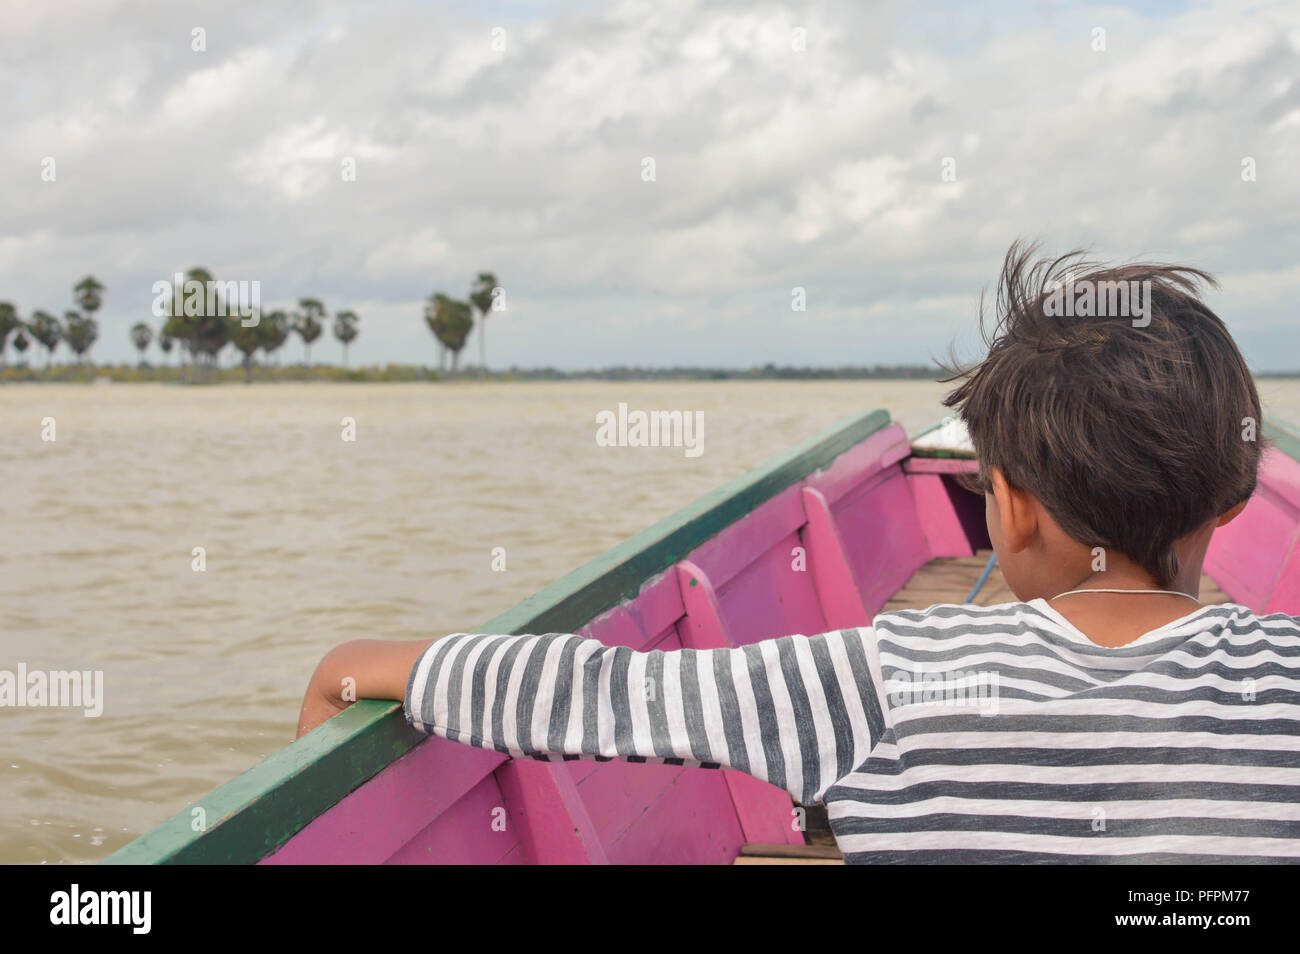 Young tourist contemplating the landscapes of lake Tempe in the south of Sulawesi, Indonesia - Stock Image